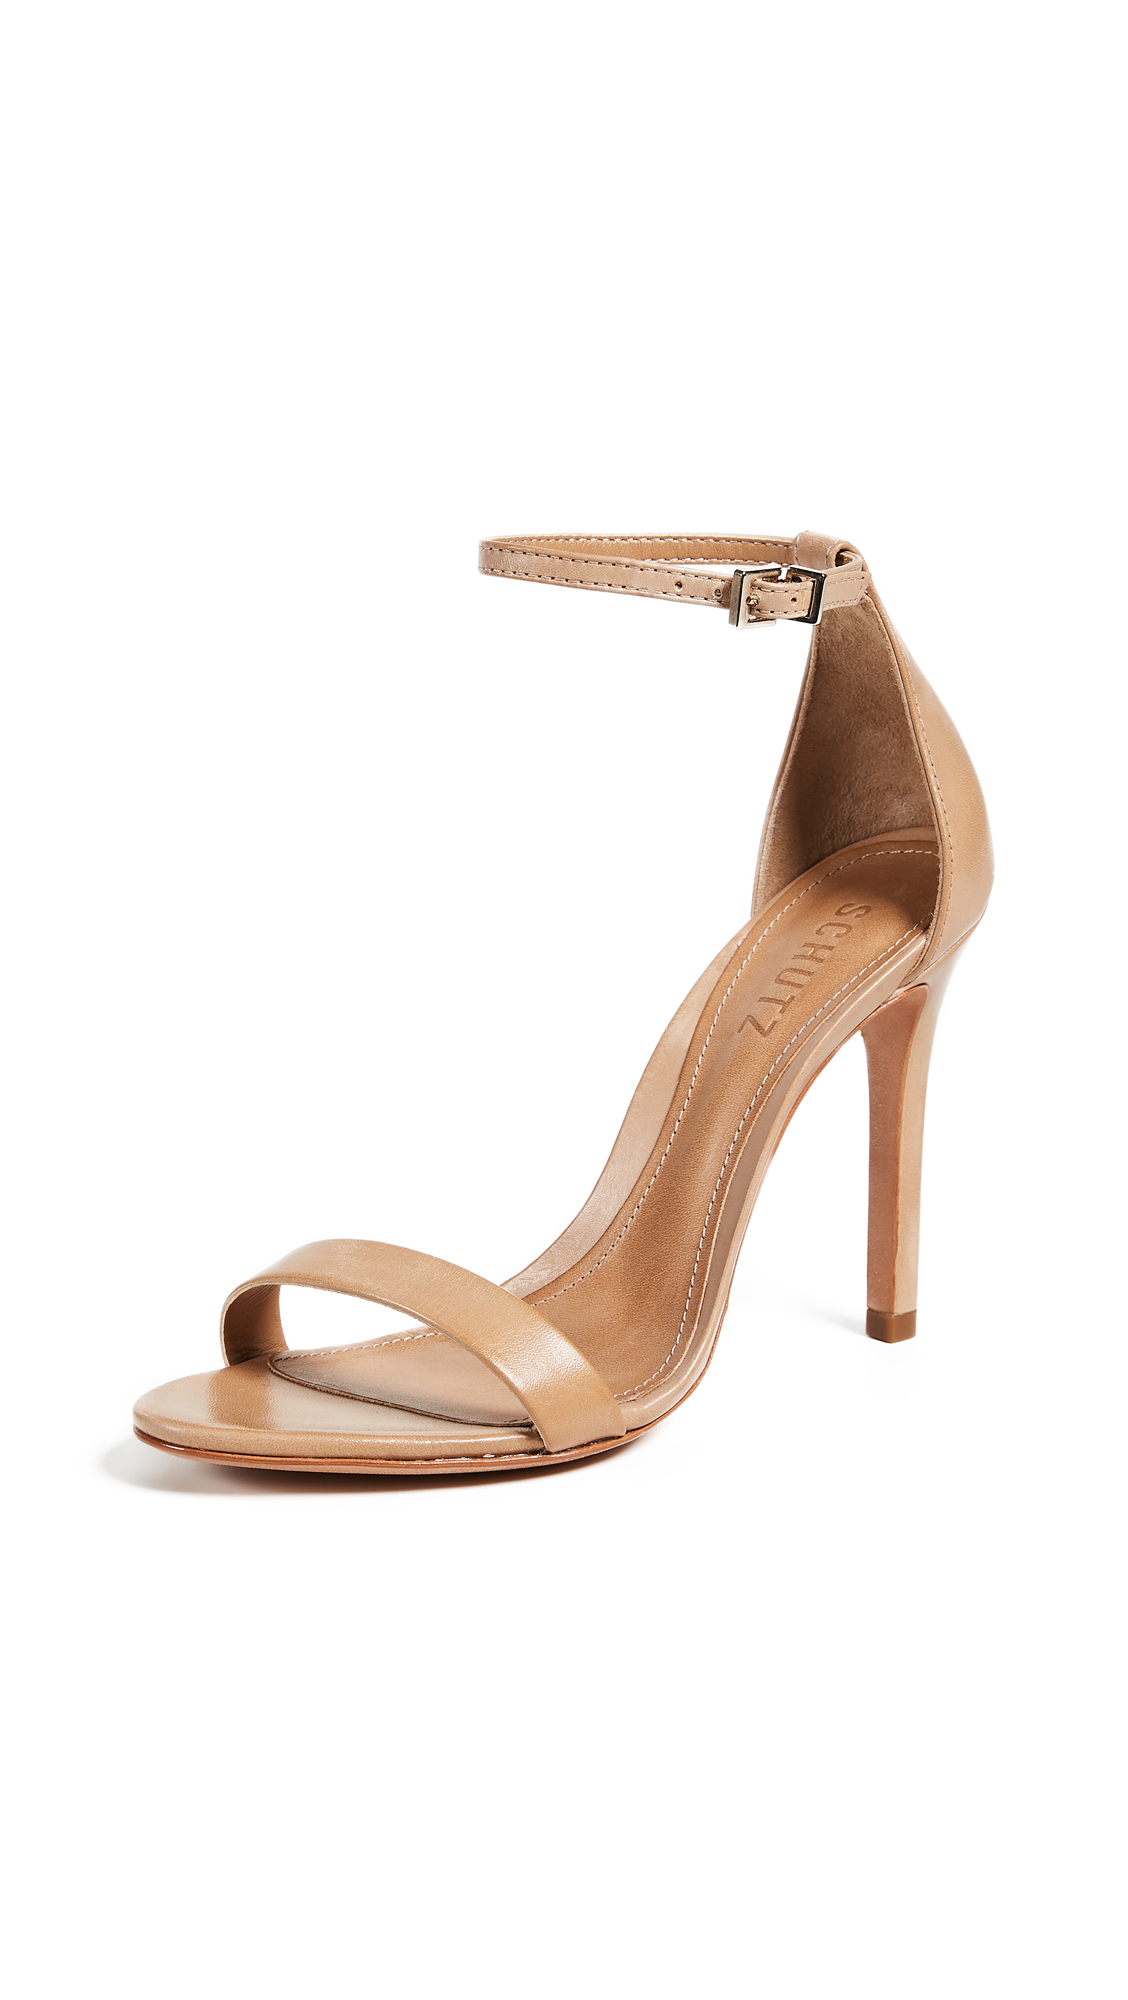 Schutz Cadey Lee Sandals - Light Wood